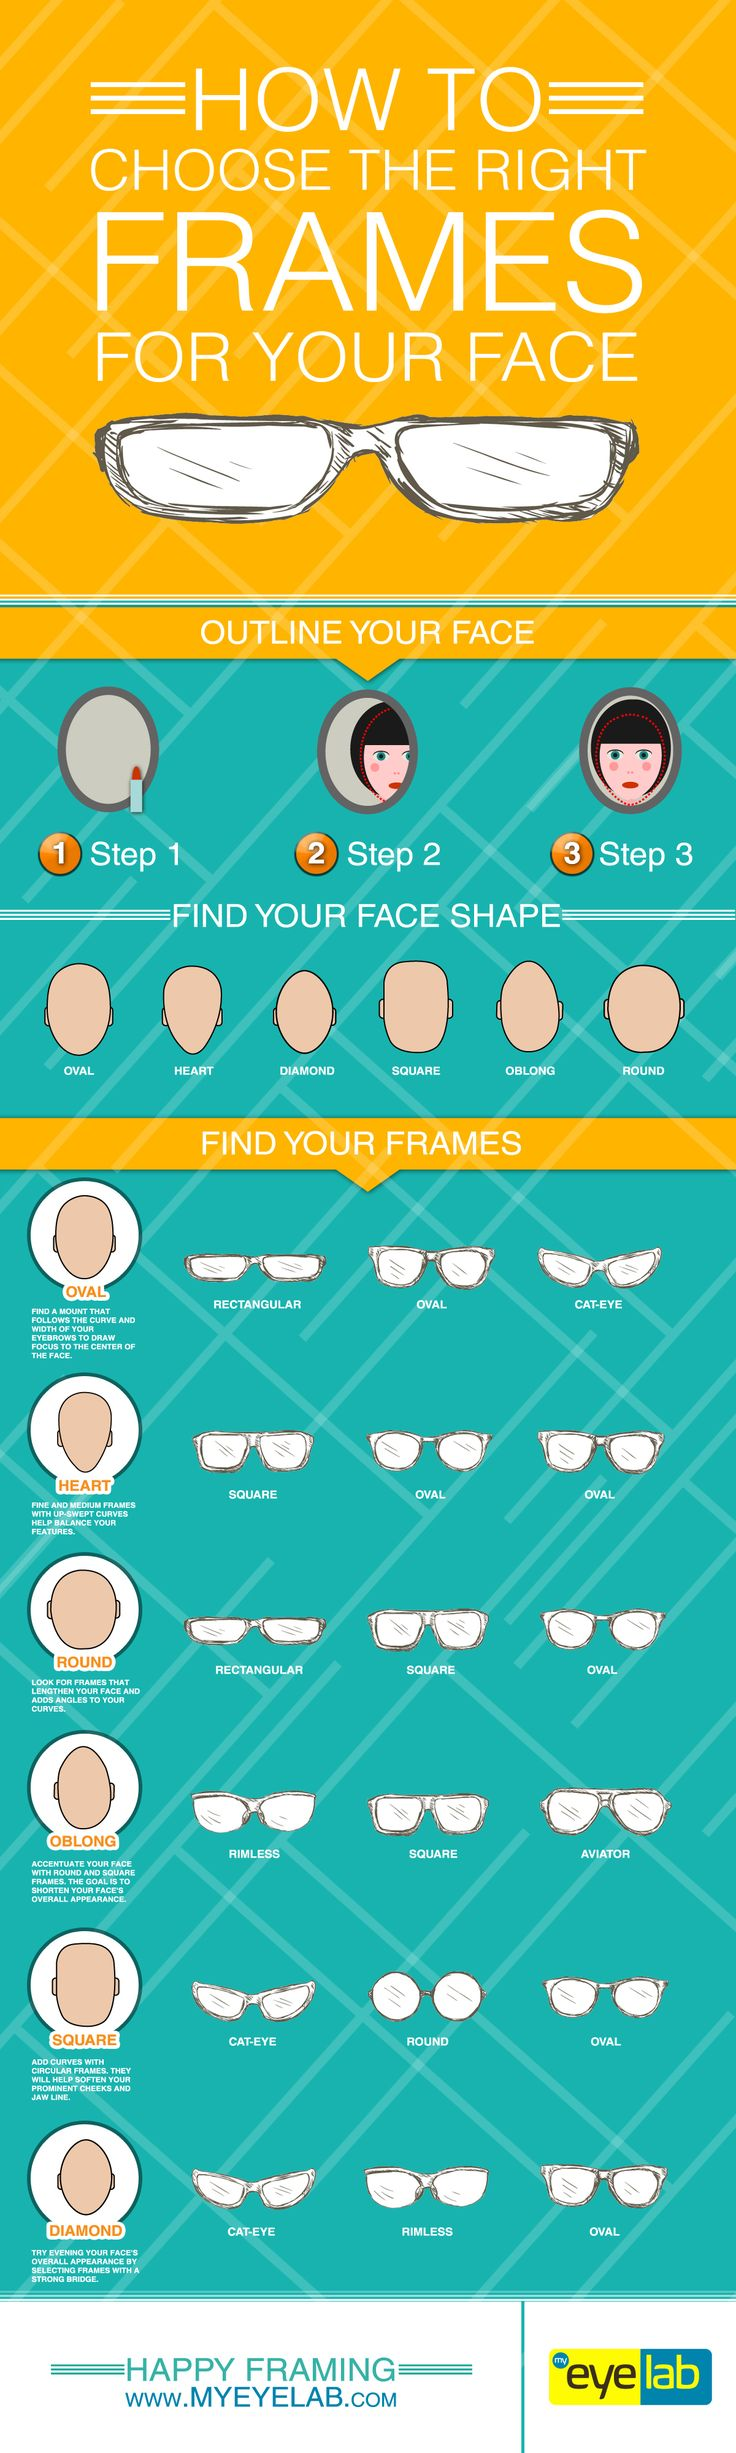 Glasses for Your Face Shape - Colleen Hammond